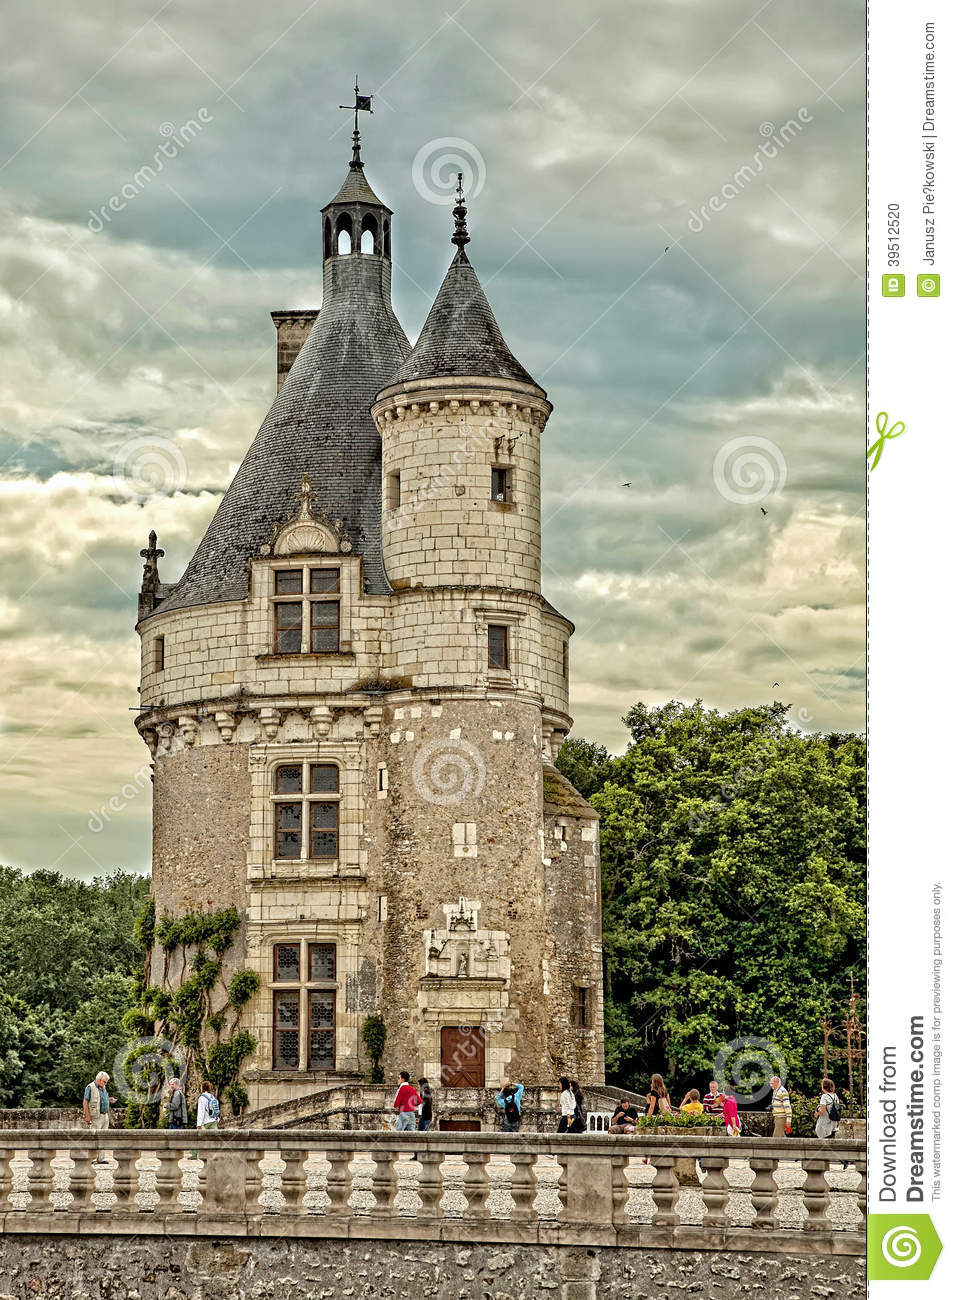 Marques Tower at the castle of Chenonceau in France